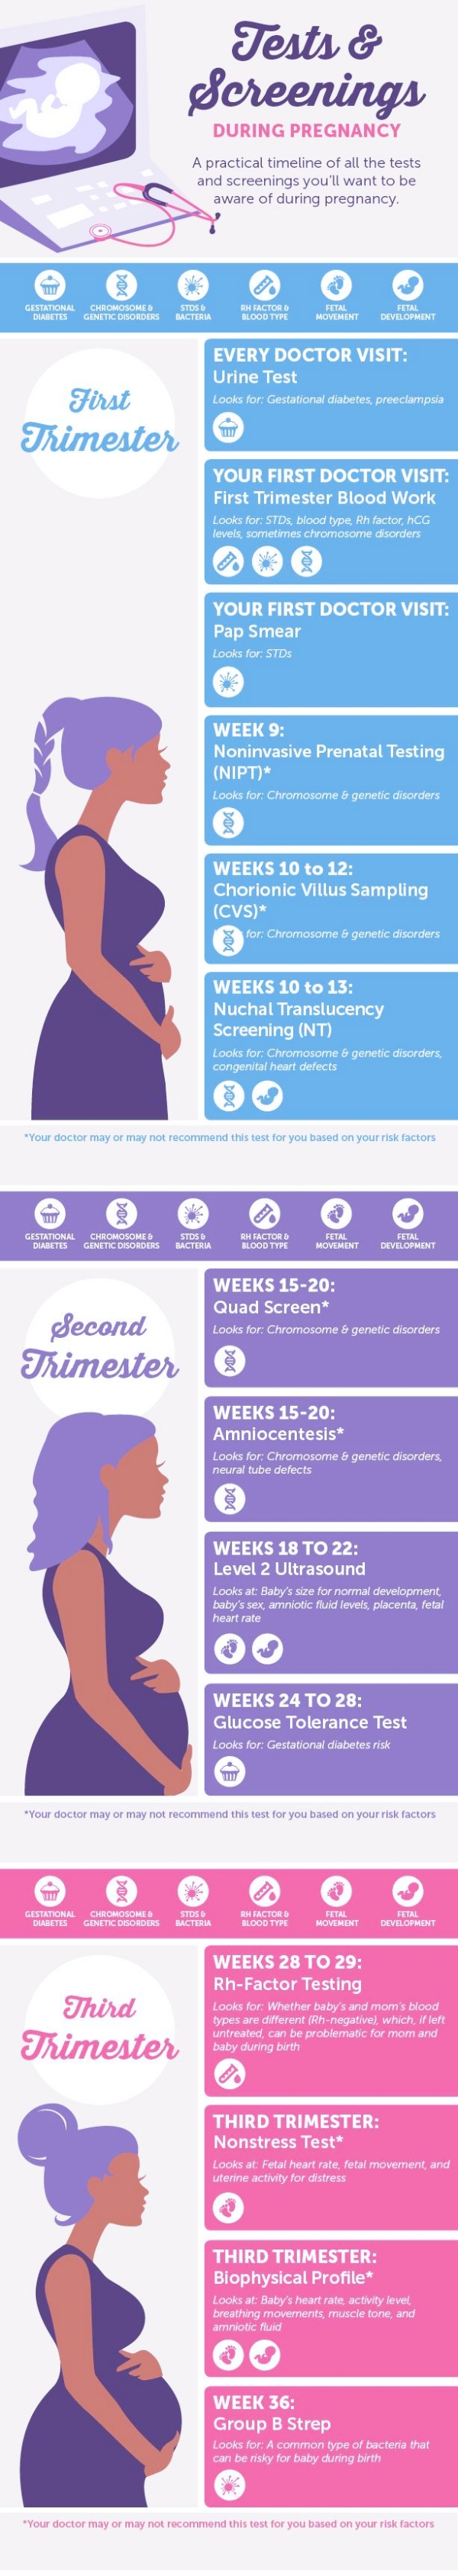 All-About-First-Trimester-of-Pregnancy-Week-1-to-Week-12